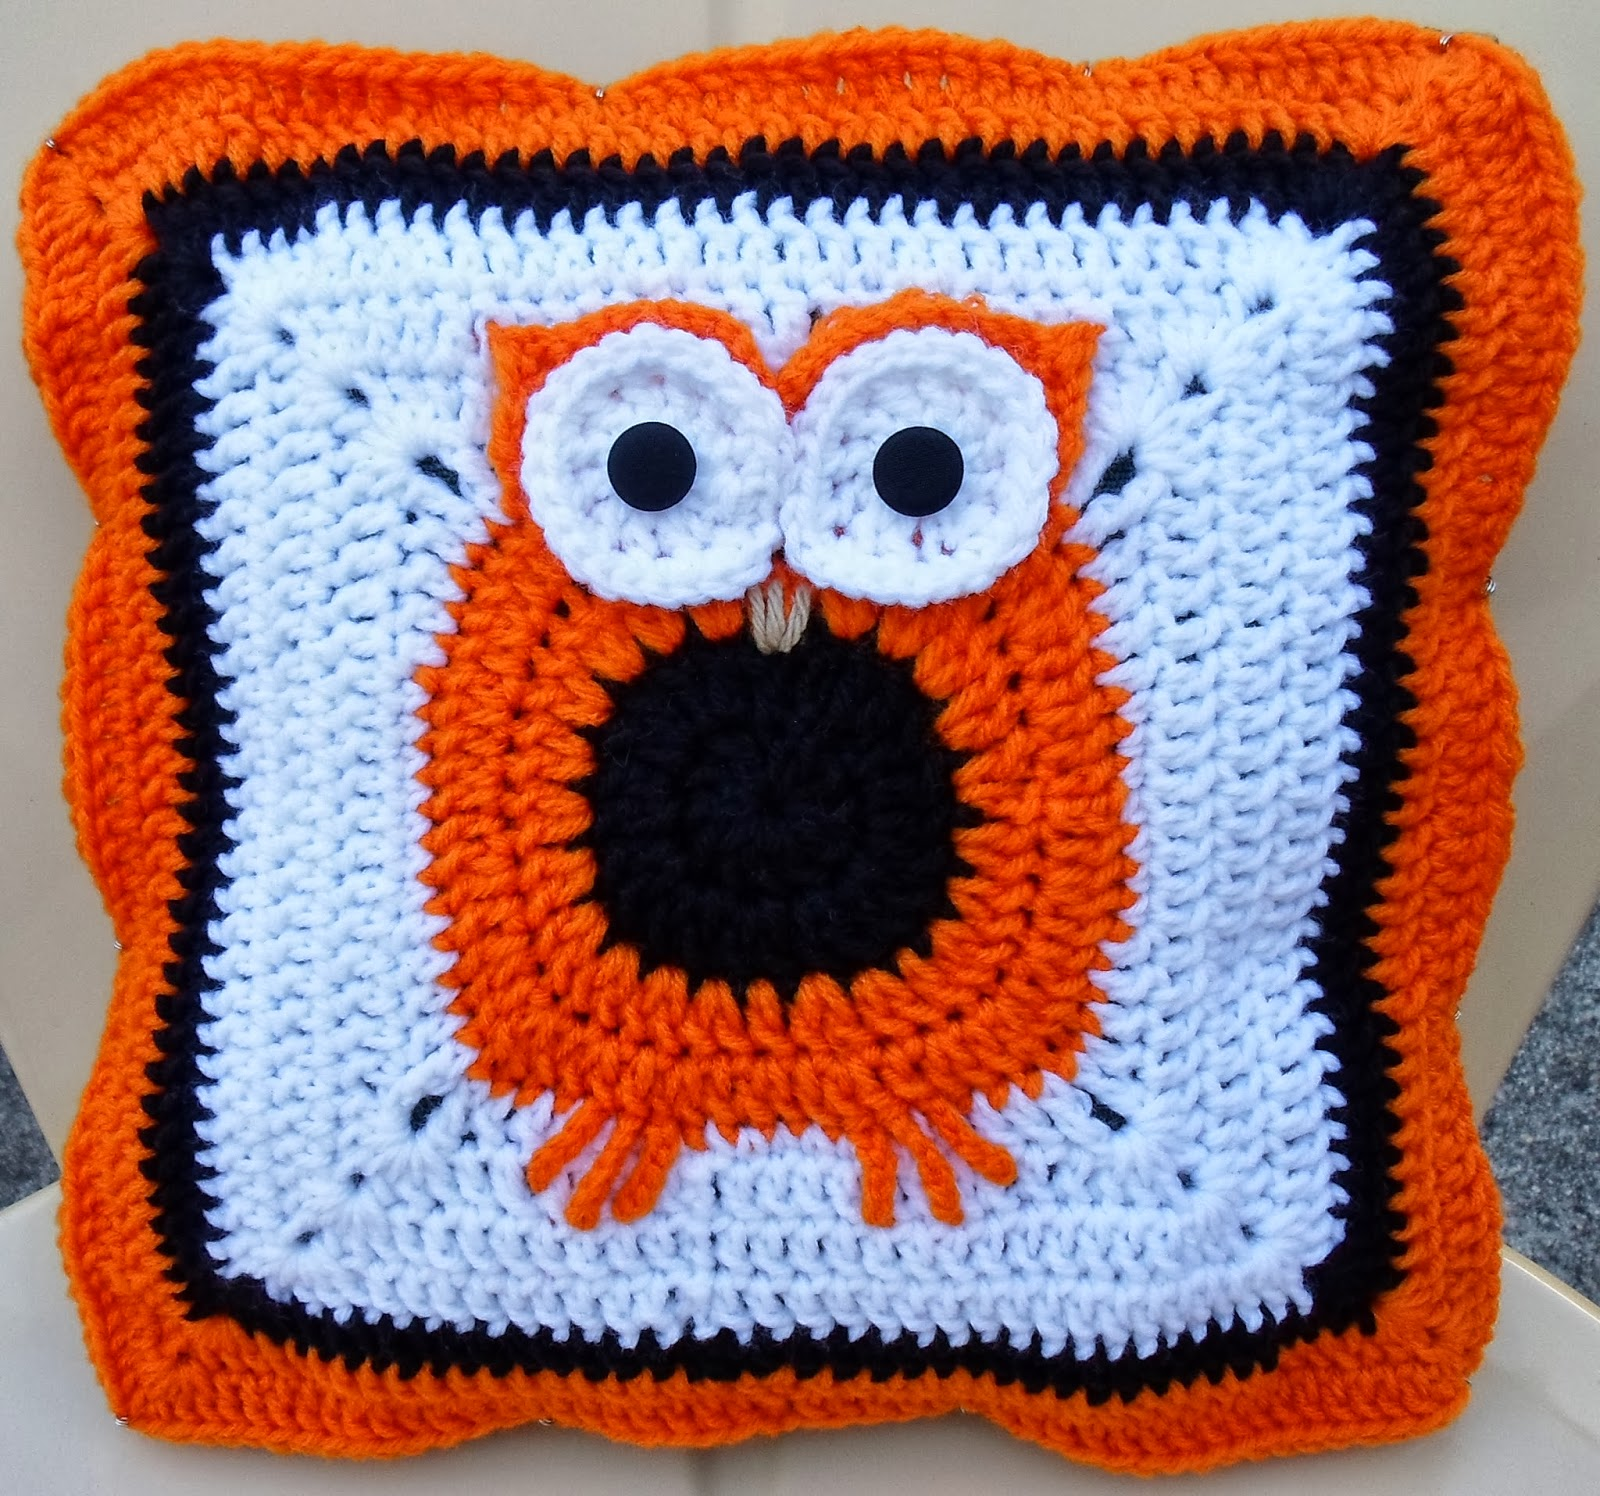 Happier Than A Pig In Mud: Crochet Owl Pillow Cover Pattern